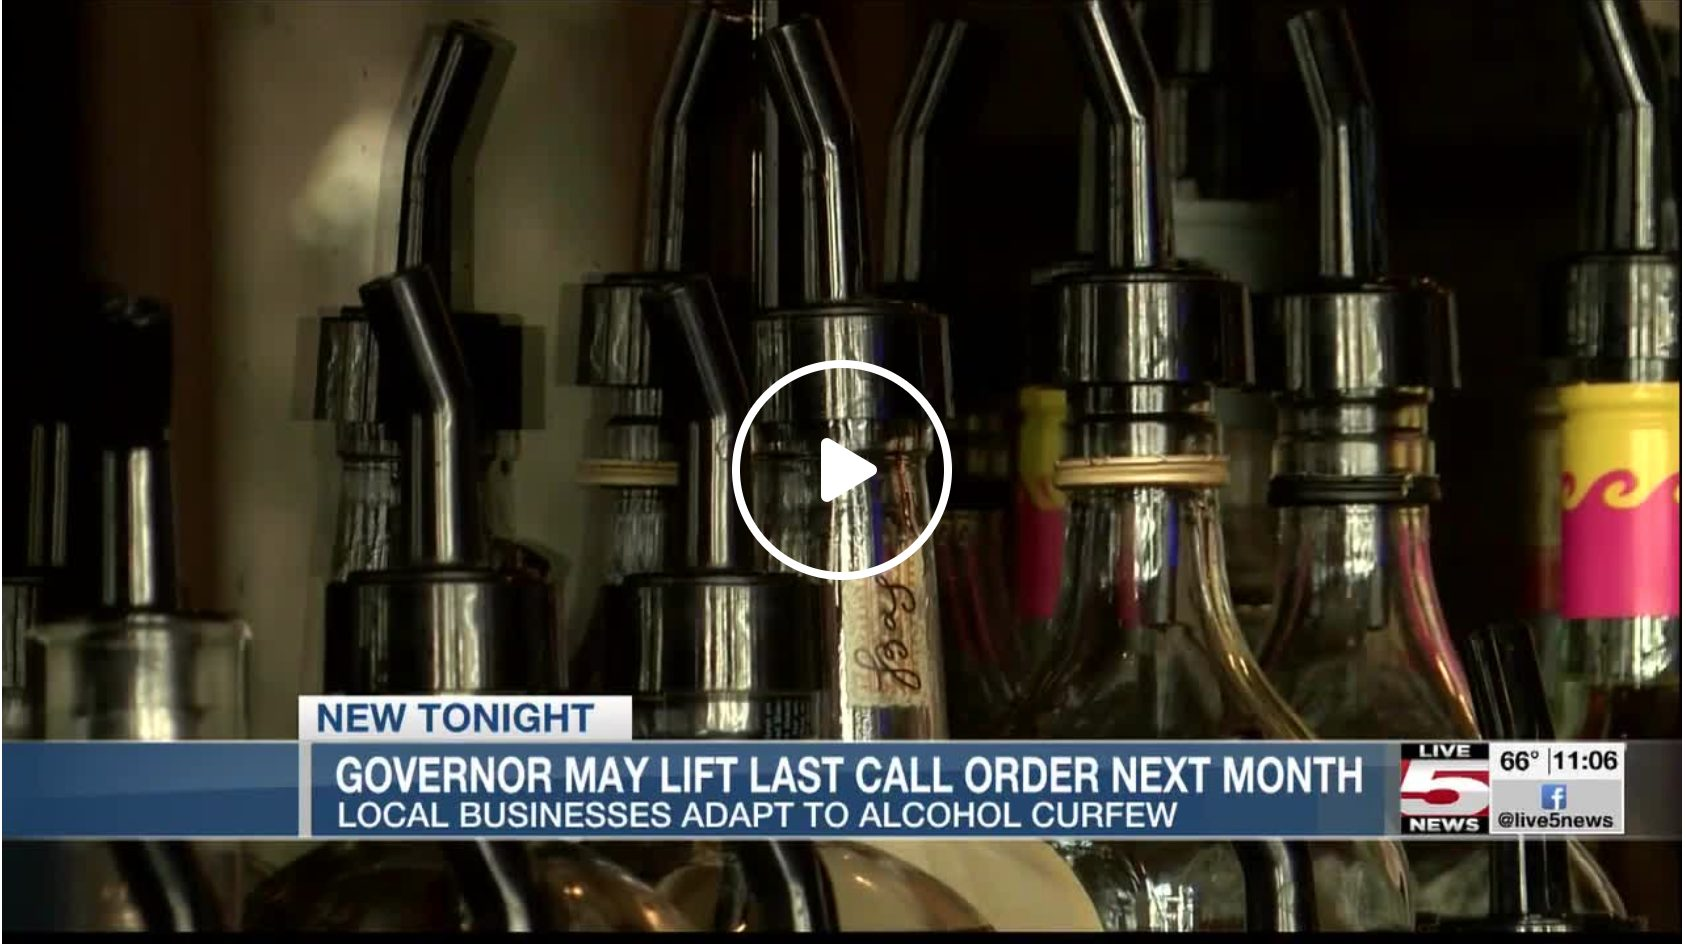 Businesses see little change in revenue months after 'Last Call' order